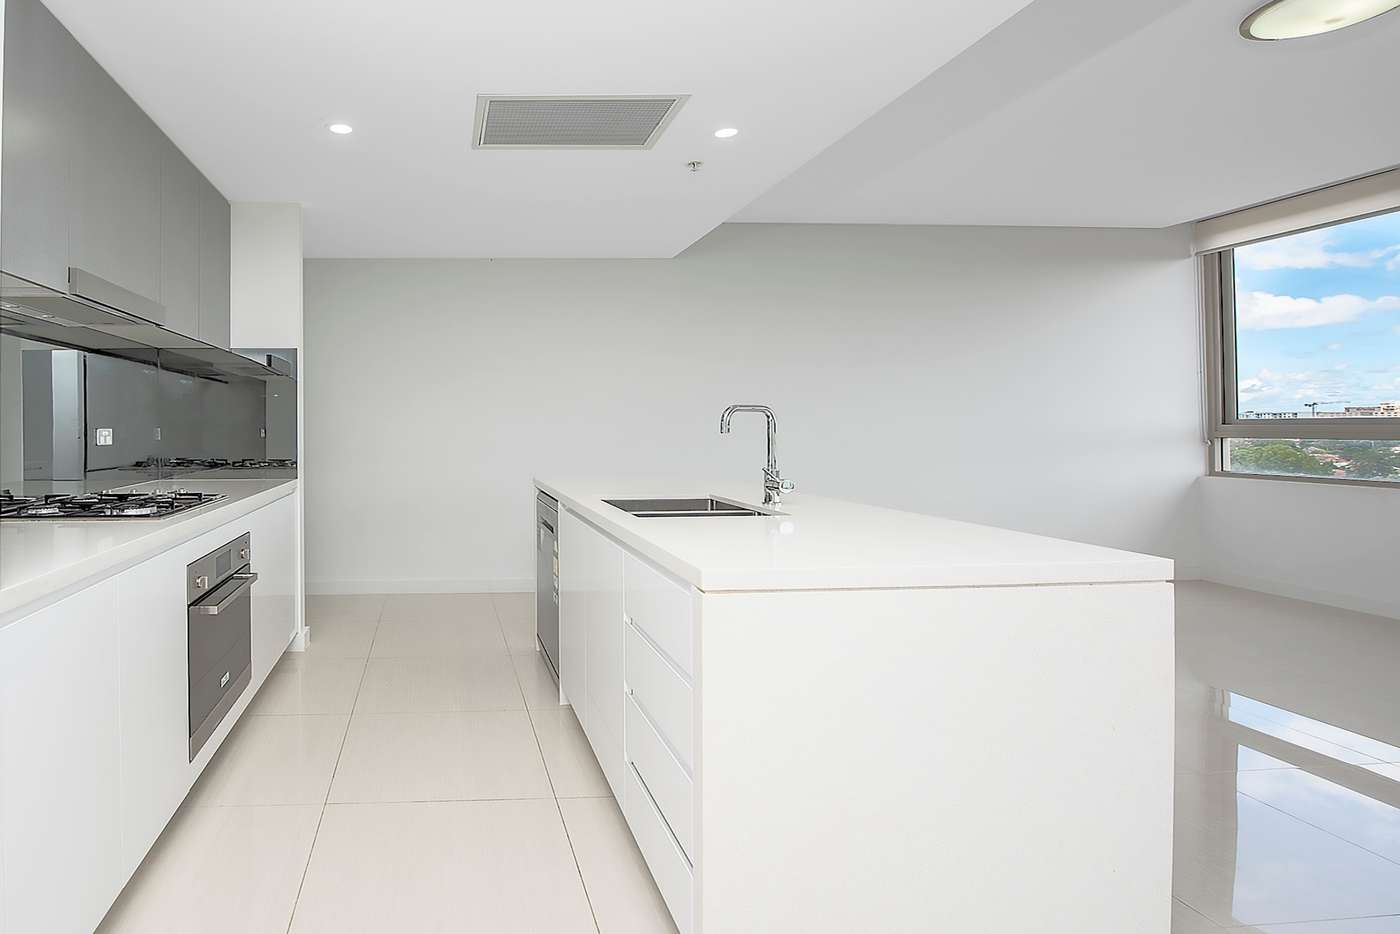 Main view of Homely apartment listing, 6.1006/1a Morton Street, Parramatta NSW 2150